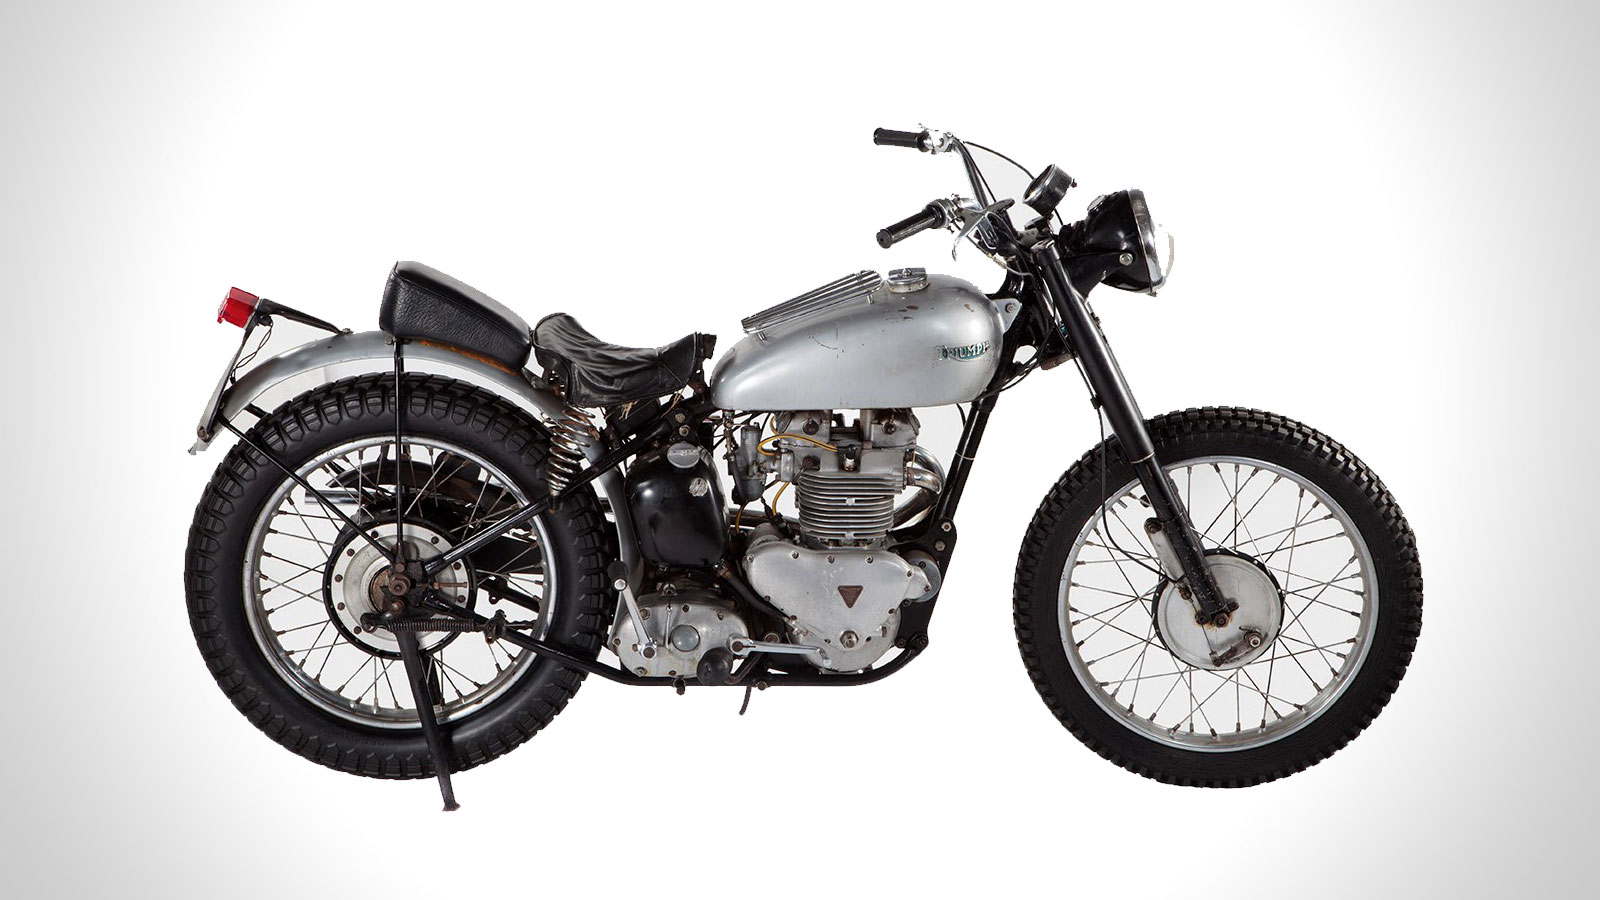 FONZIE'S HAPPY DAYS 1949 TRIUMPH MOTORCYCLE IS UP FOR AUCTION